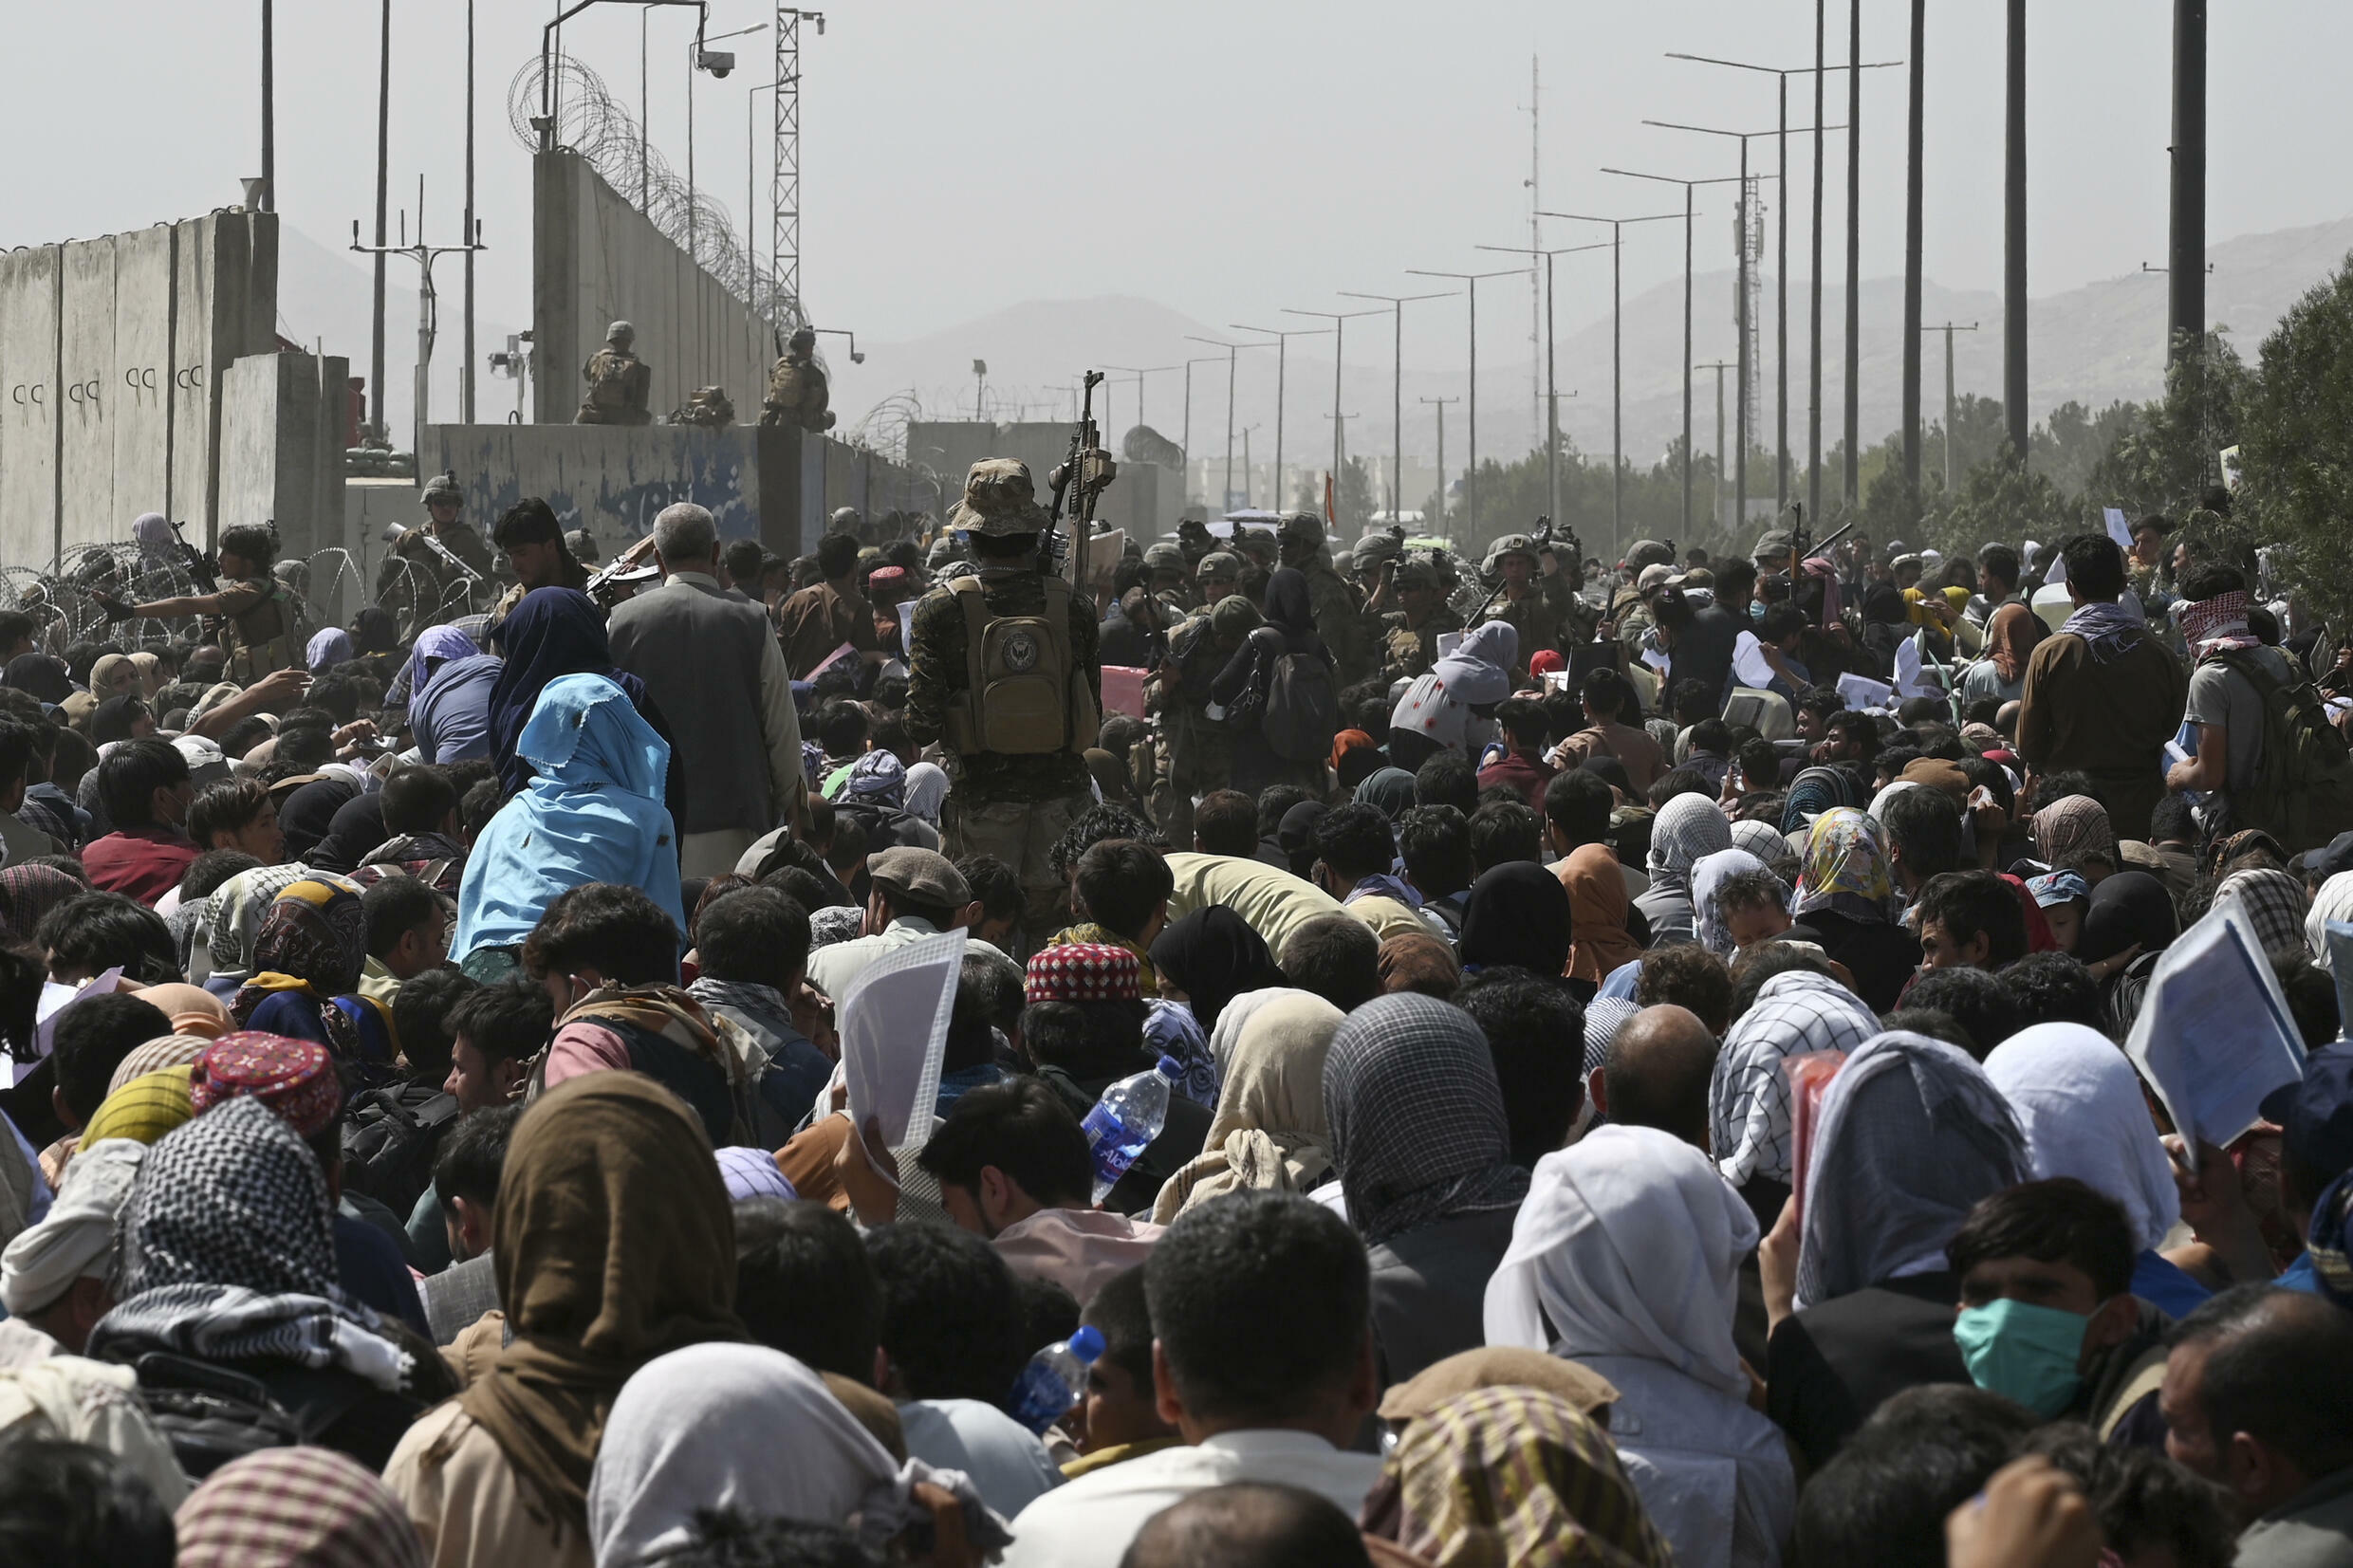 The crowd outside Kabul airport of people hoping to leave was huge